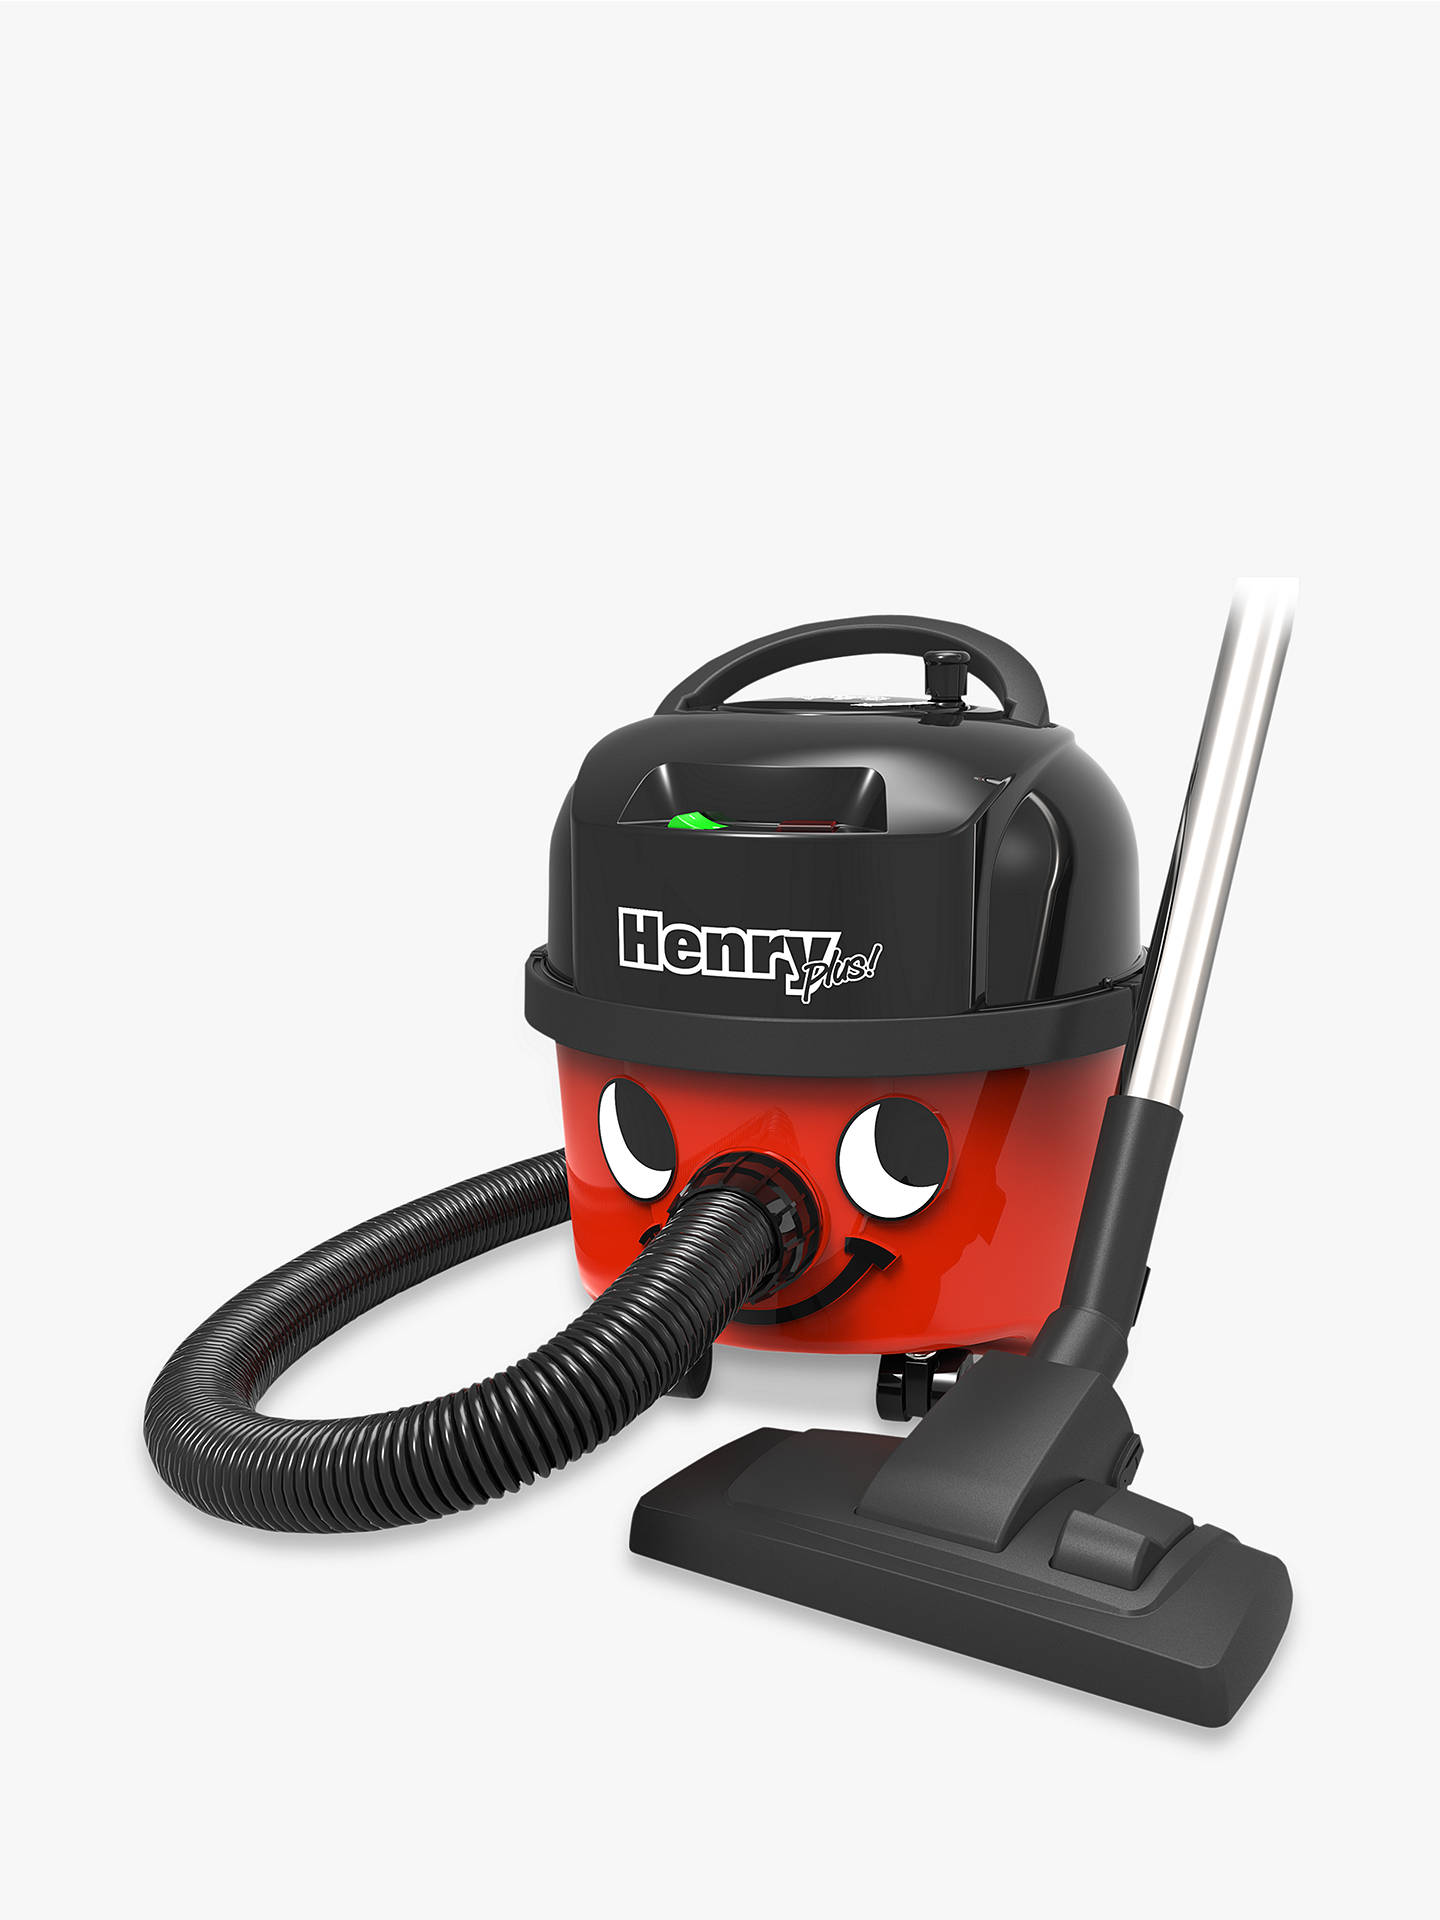 Numatic Henry Plus Vacuum Cleaner at